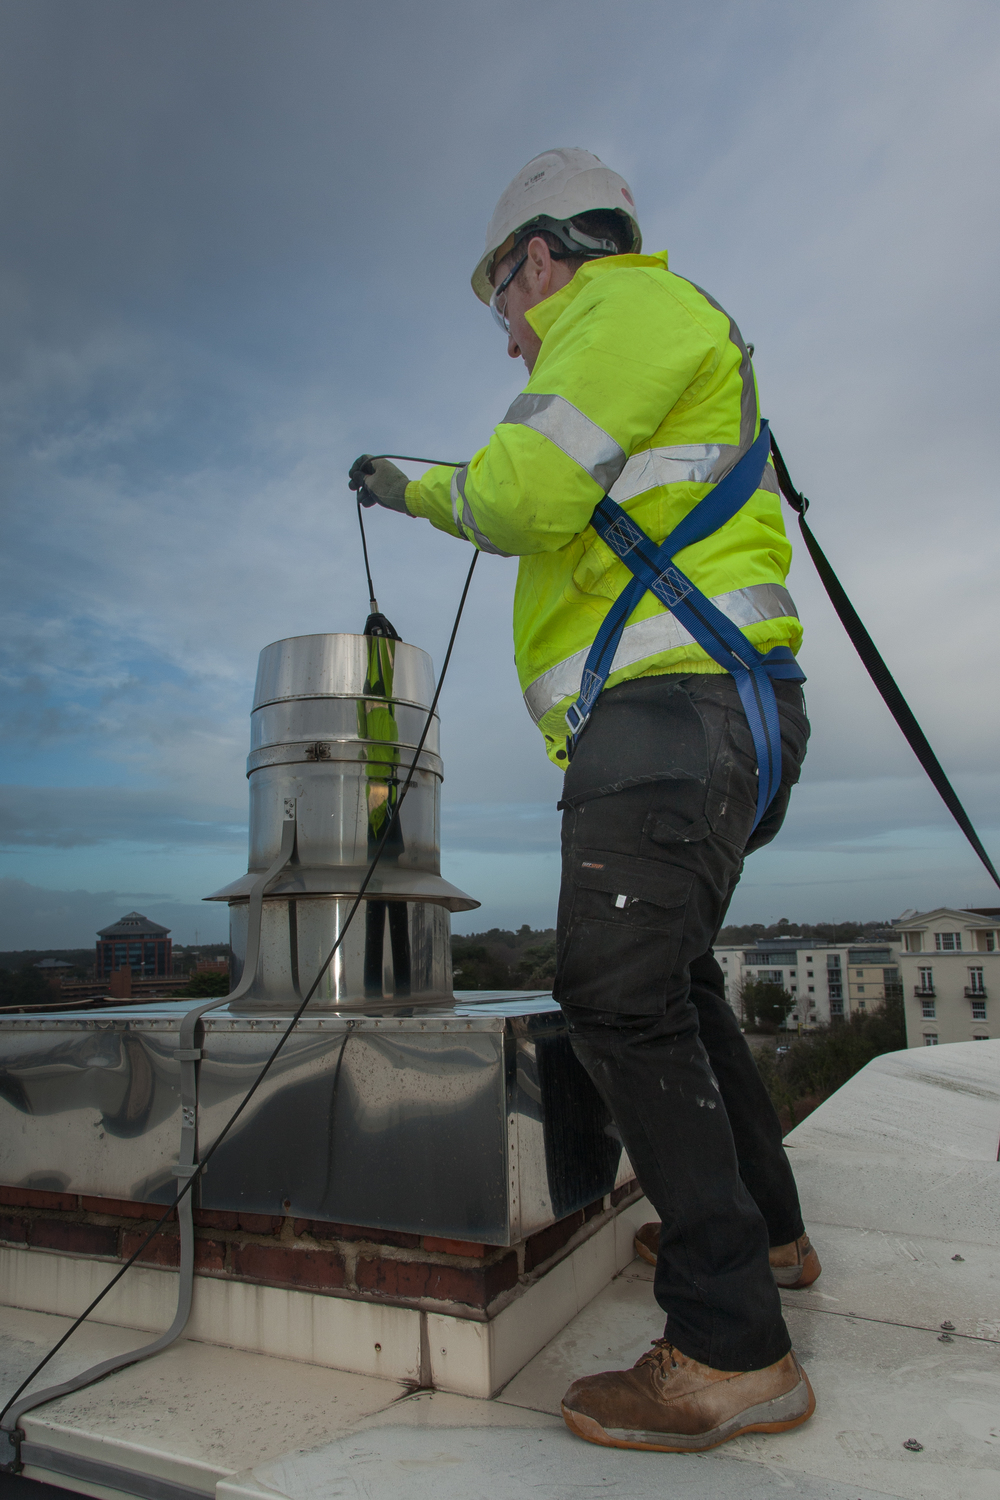 Flue Inspection by Flustax, Premier Inn Hotel, Bournemouth - commercial photography by Rick McEvoy